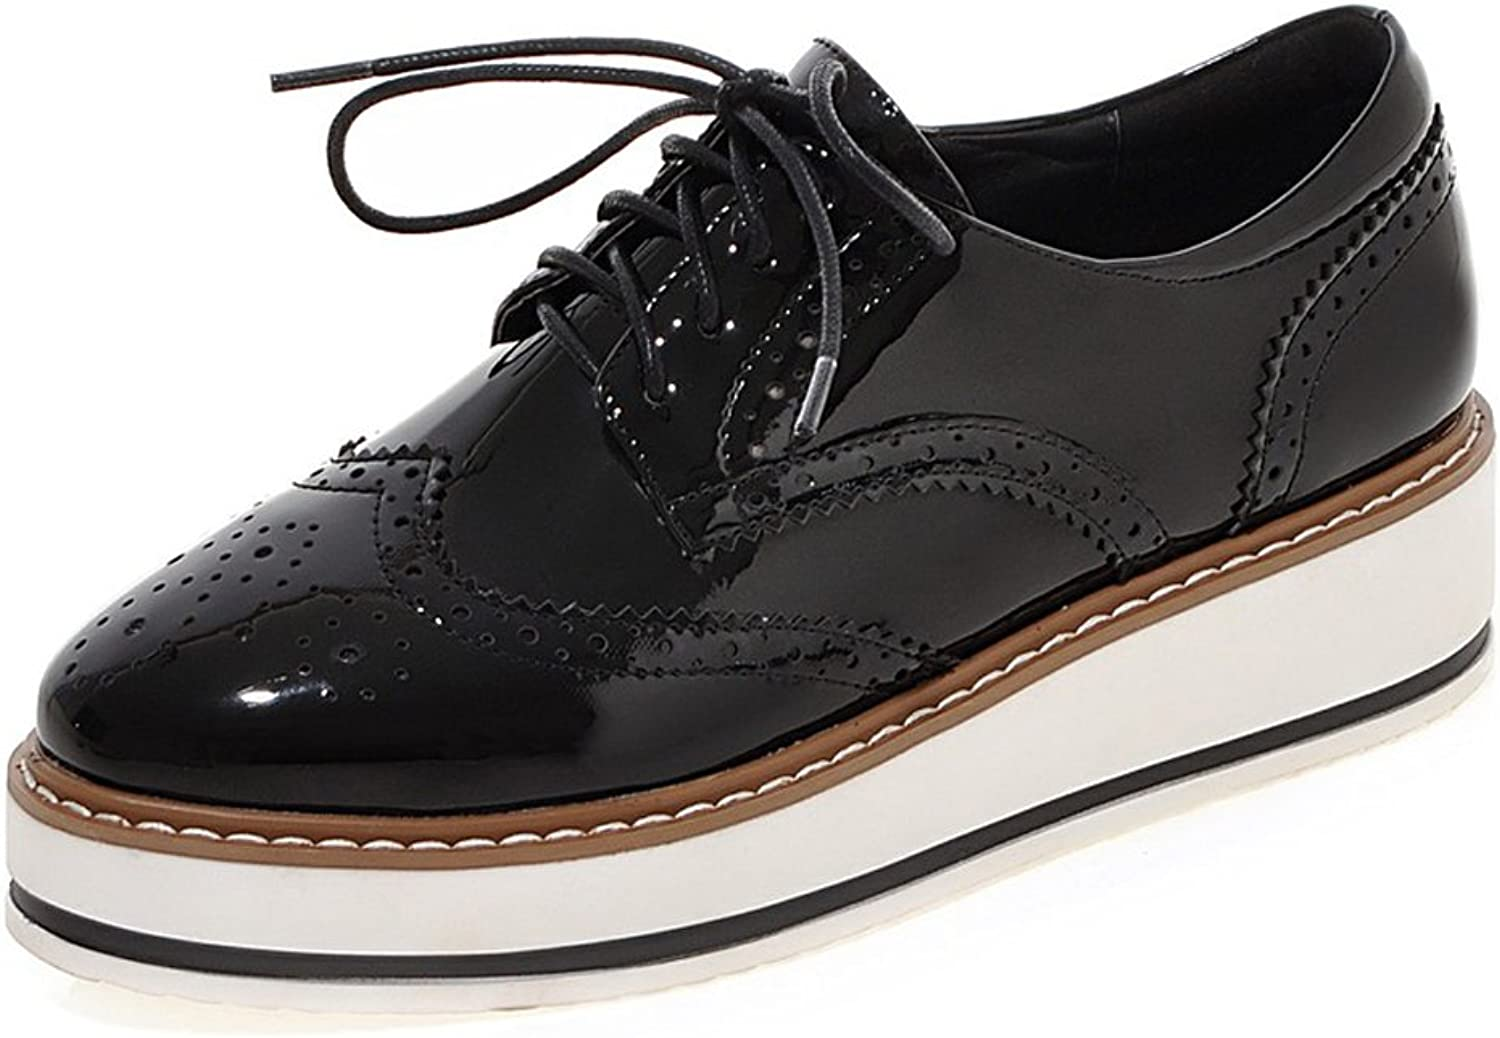 MINIVOG Treaded-Sole Square-Toe Brogue Womens Wedge shoes